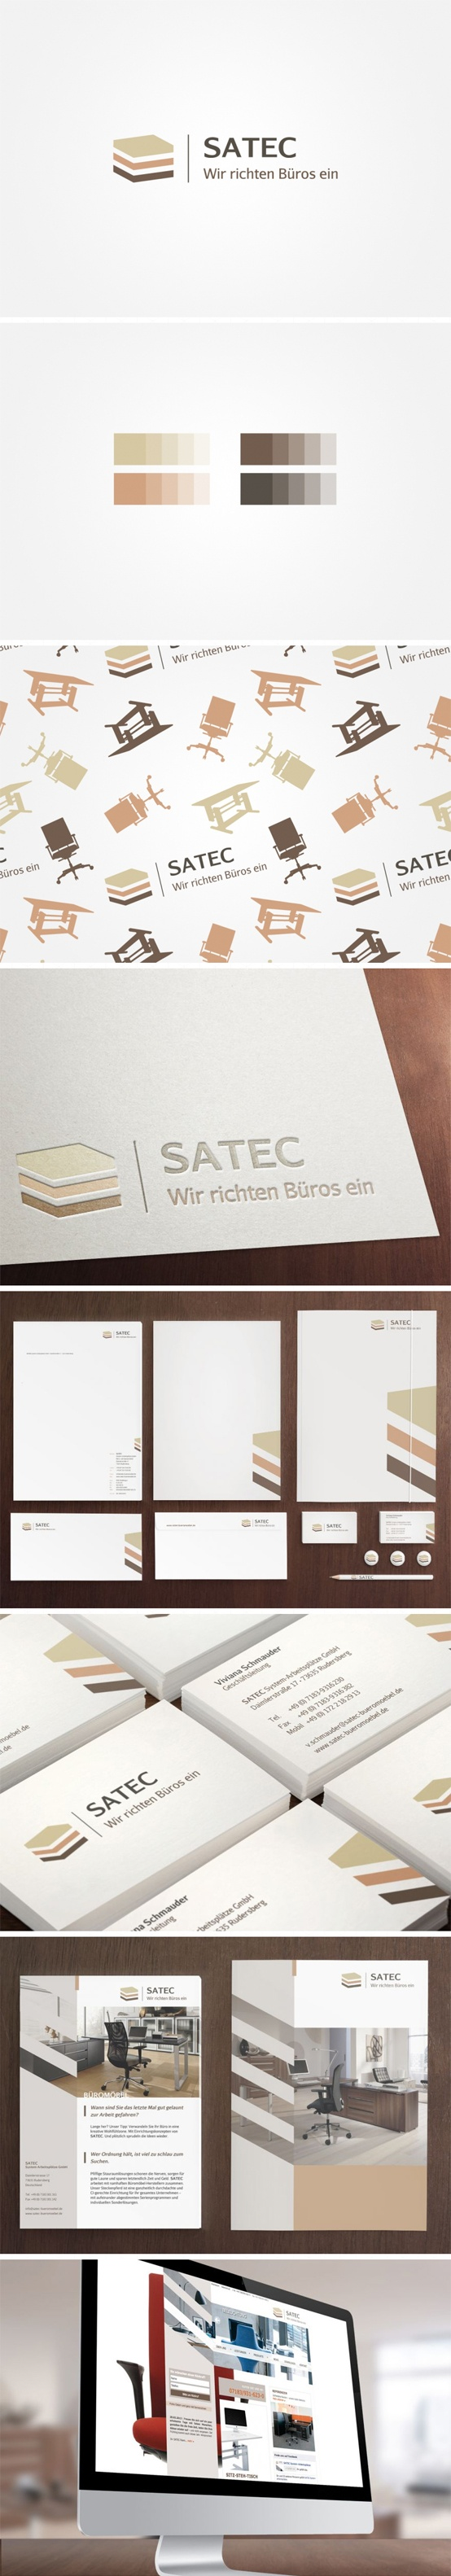 corporate design with website for satec Büromöbel | #stationary #corporate #design #corporatedesign #logo #identity #branding #Germany | made with love in Stuttgart by www.smoco.de